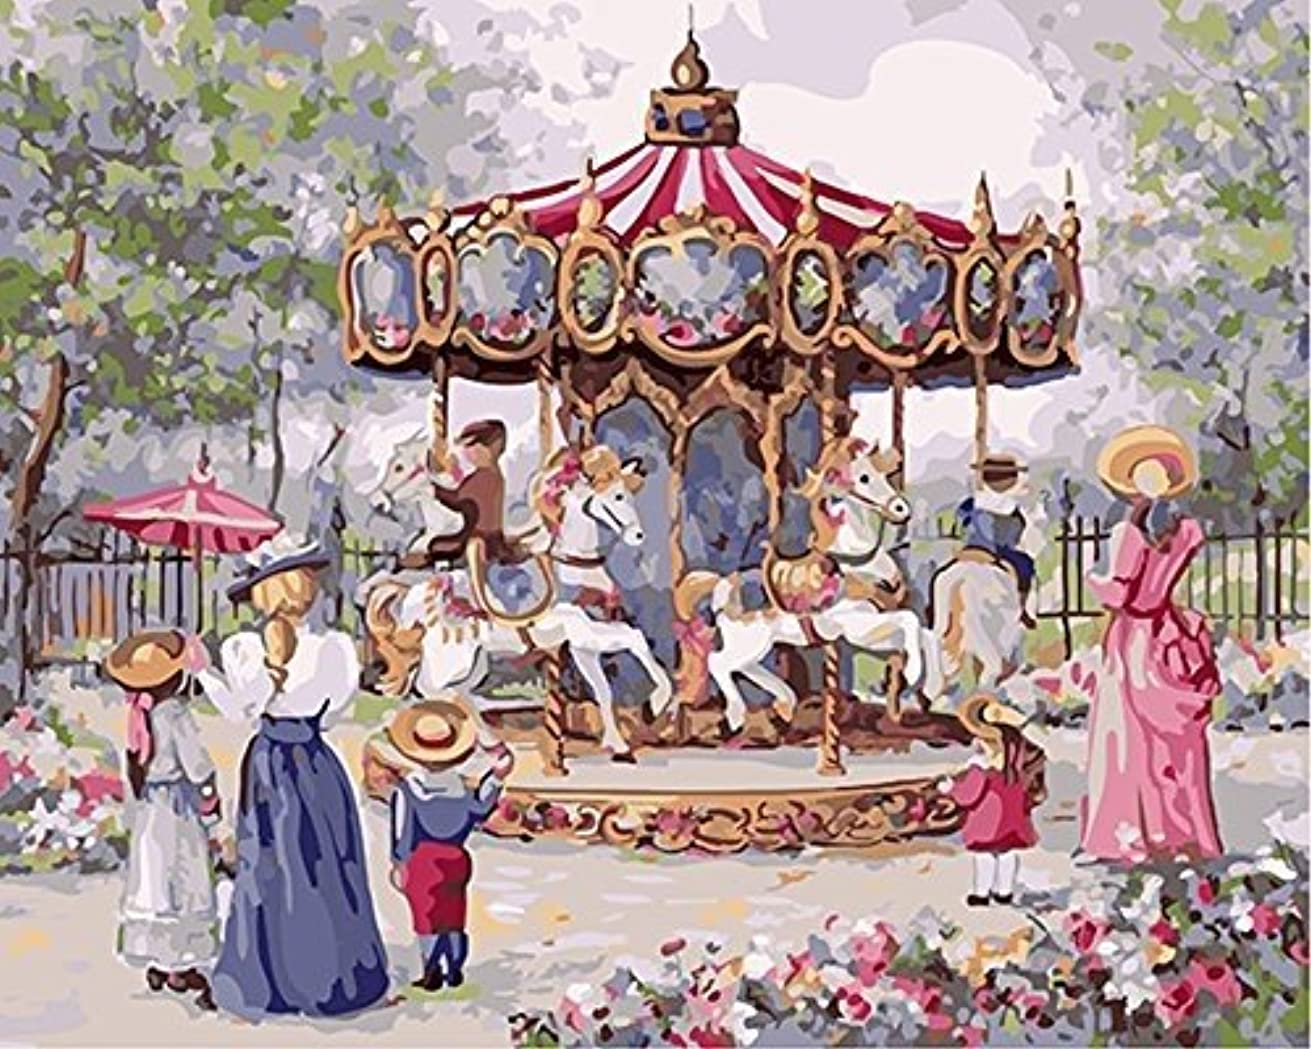 CaptainCrafts New Paint by Numbers 16x20 for Adults, Kids LINEN Canvas - Memories Of Childhood Carousel (With Frame)